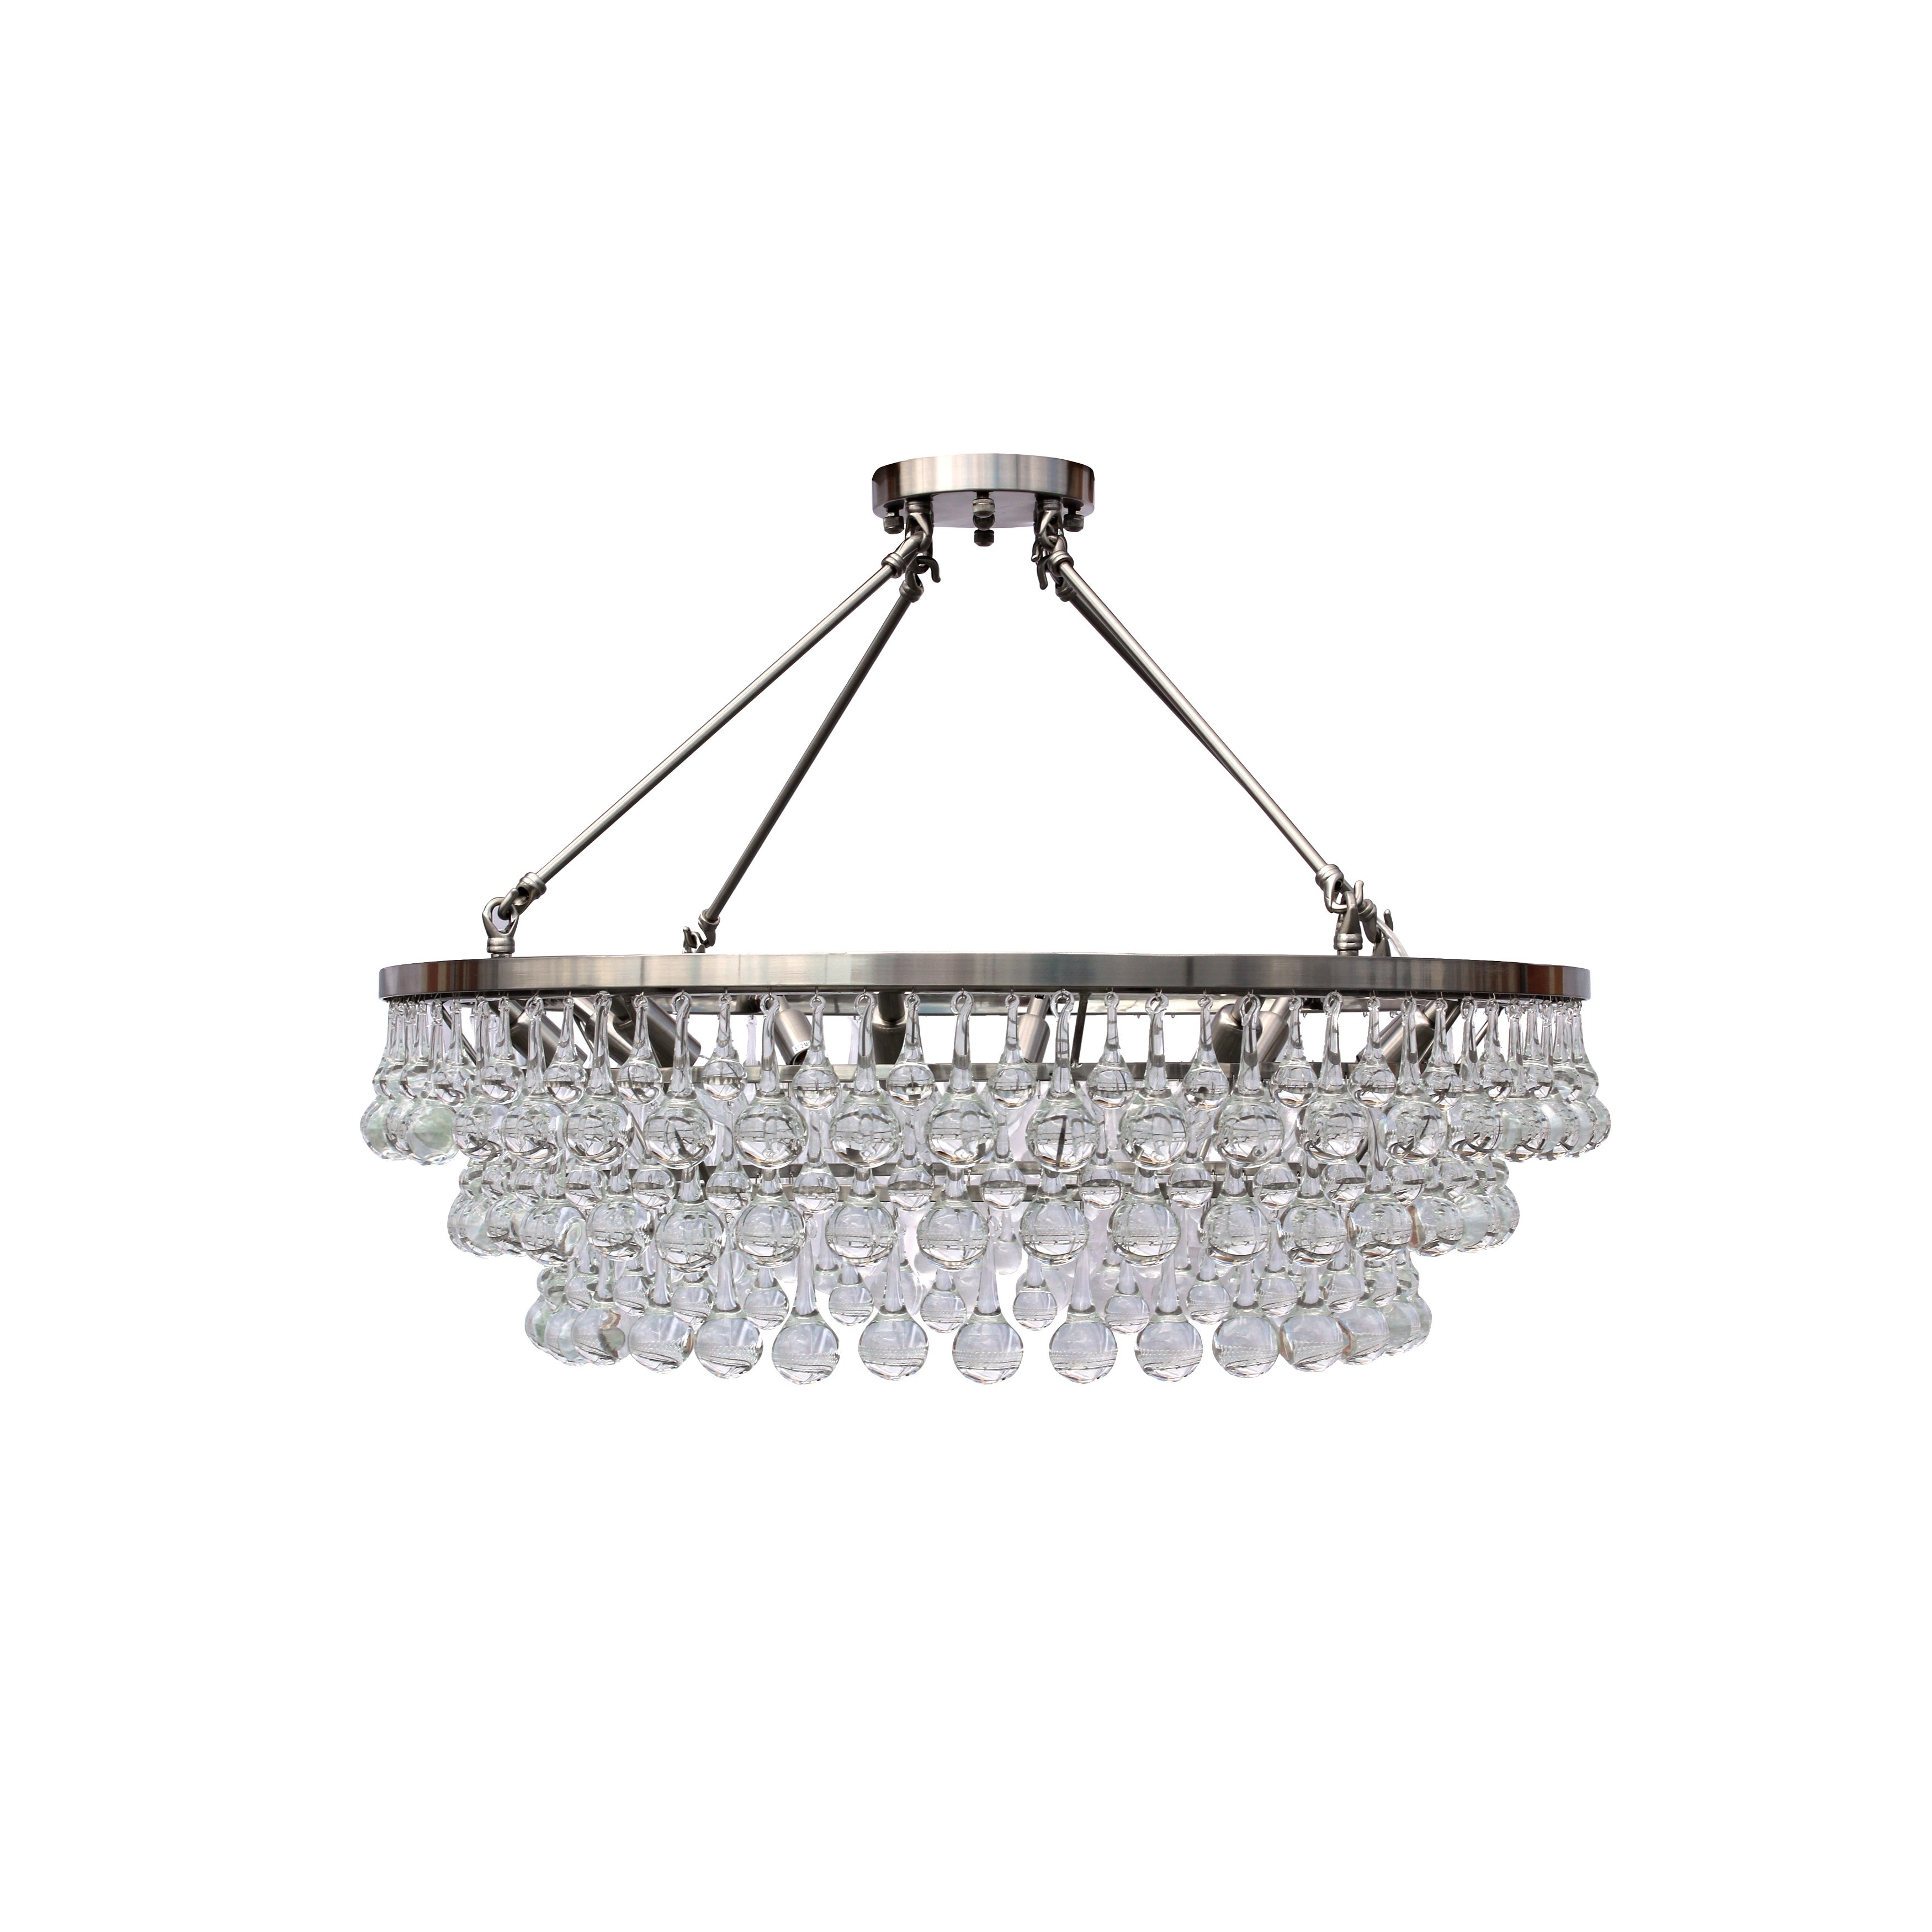 Celeste flush mount glass drop crystal chandelier brushed nickel celeste flush mount glass drop crystal chandelier brushed nickel free shipping today overstock 20821740 arubaitofo Gallery